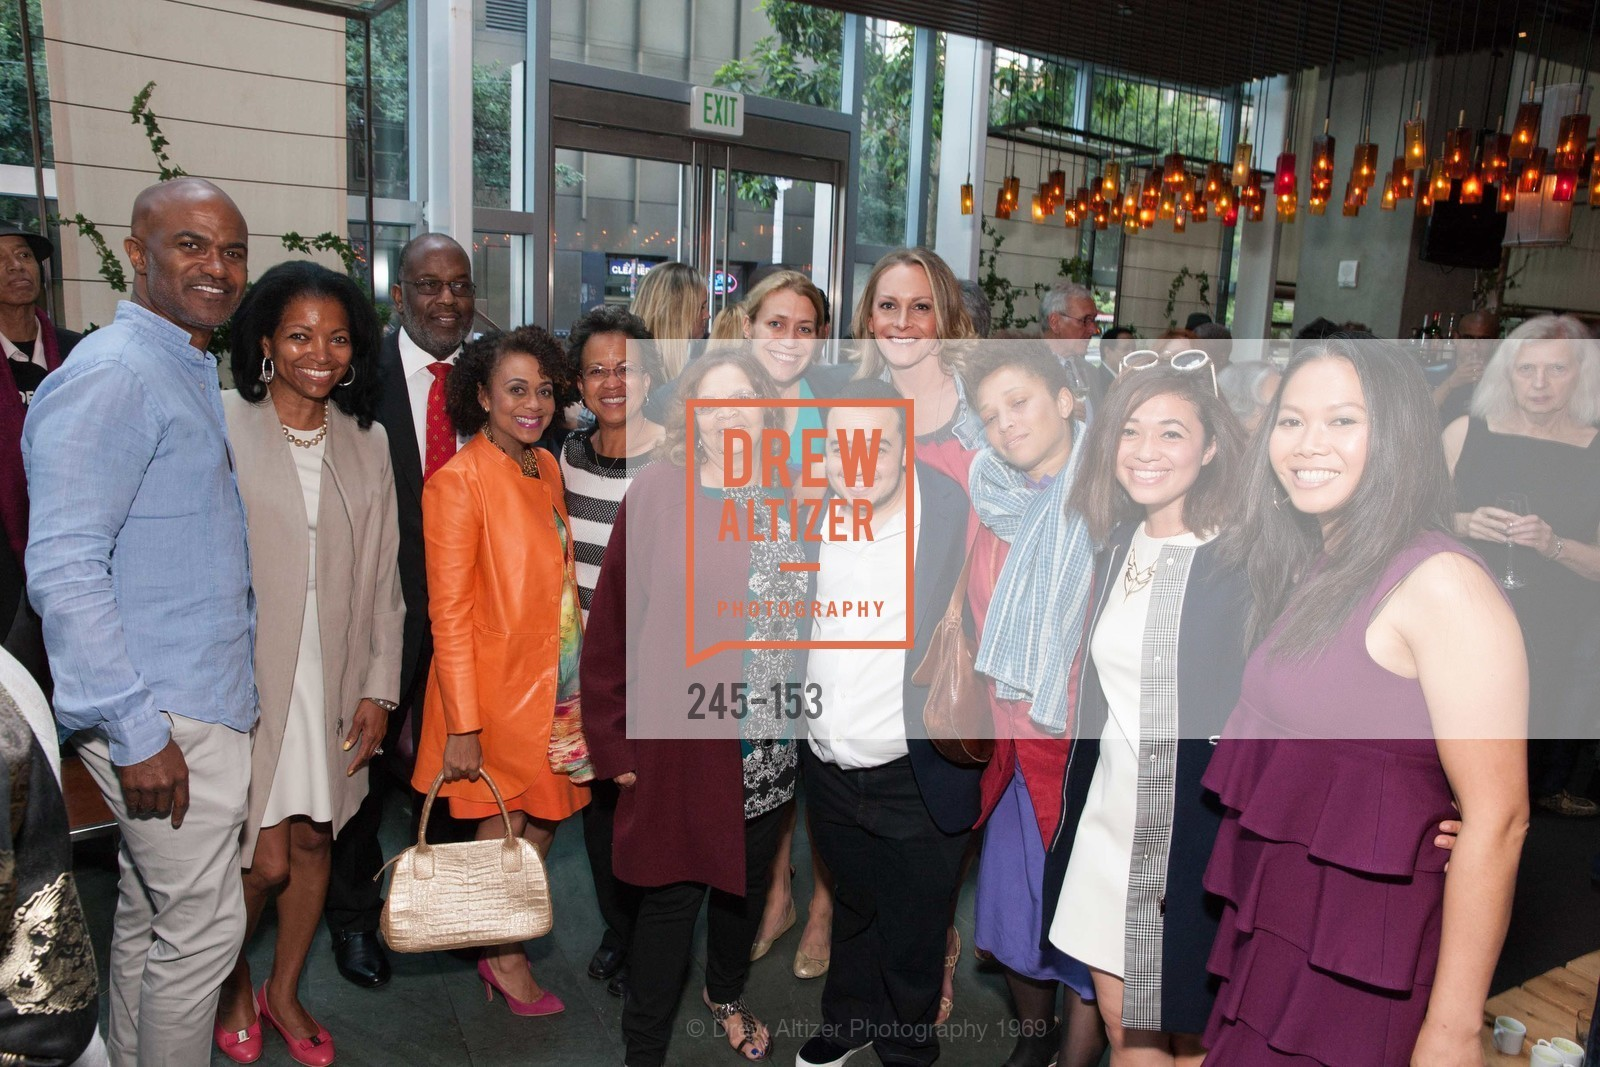 Denise Bradley Tyson, Bernard Tyson, Arrick Weathers, Alicia Horowitz, Jay Phoenix, Loretta Wiley, Elizabeth Coon, Joslyn DeFreece, Jules Horowitz, Maria Judy, Sophia Horowitz, Dori Caminong, GLIDE's Power of One Lunch Countdown Party, RN74. 301 Mission St, June 4th, 2015,Drew Altizer, Drew Altizer Photography, full-service event agency, private events, San Francisco photographer, photographer California